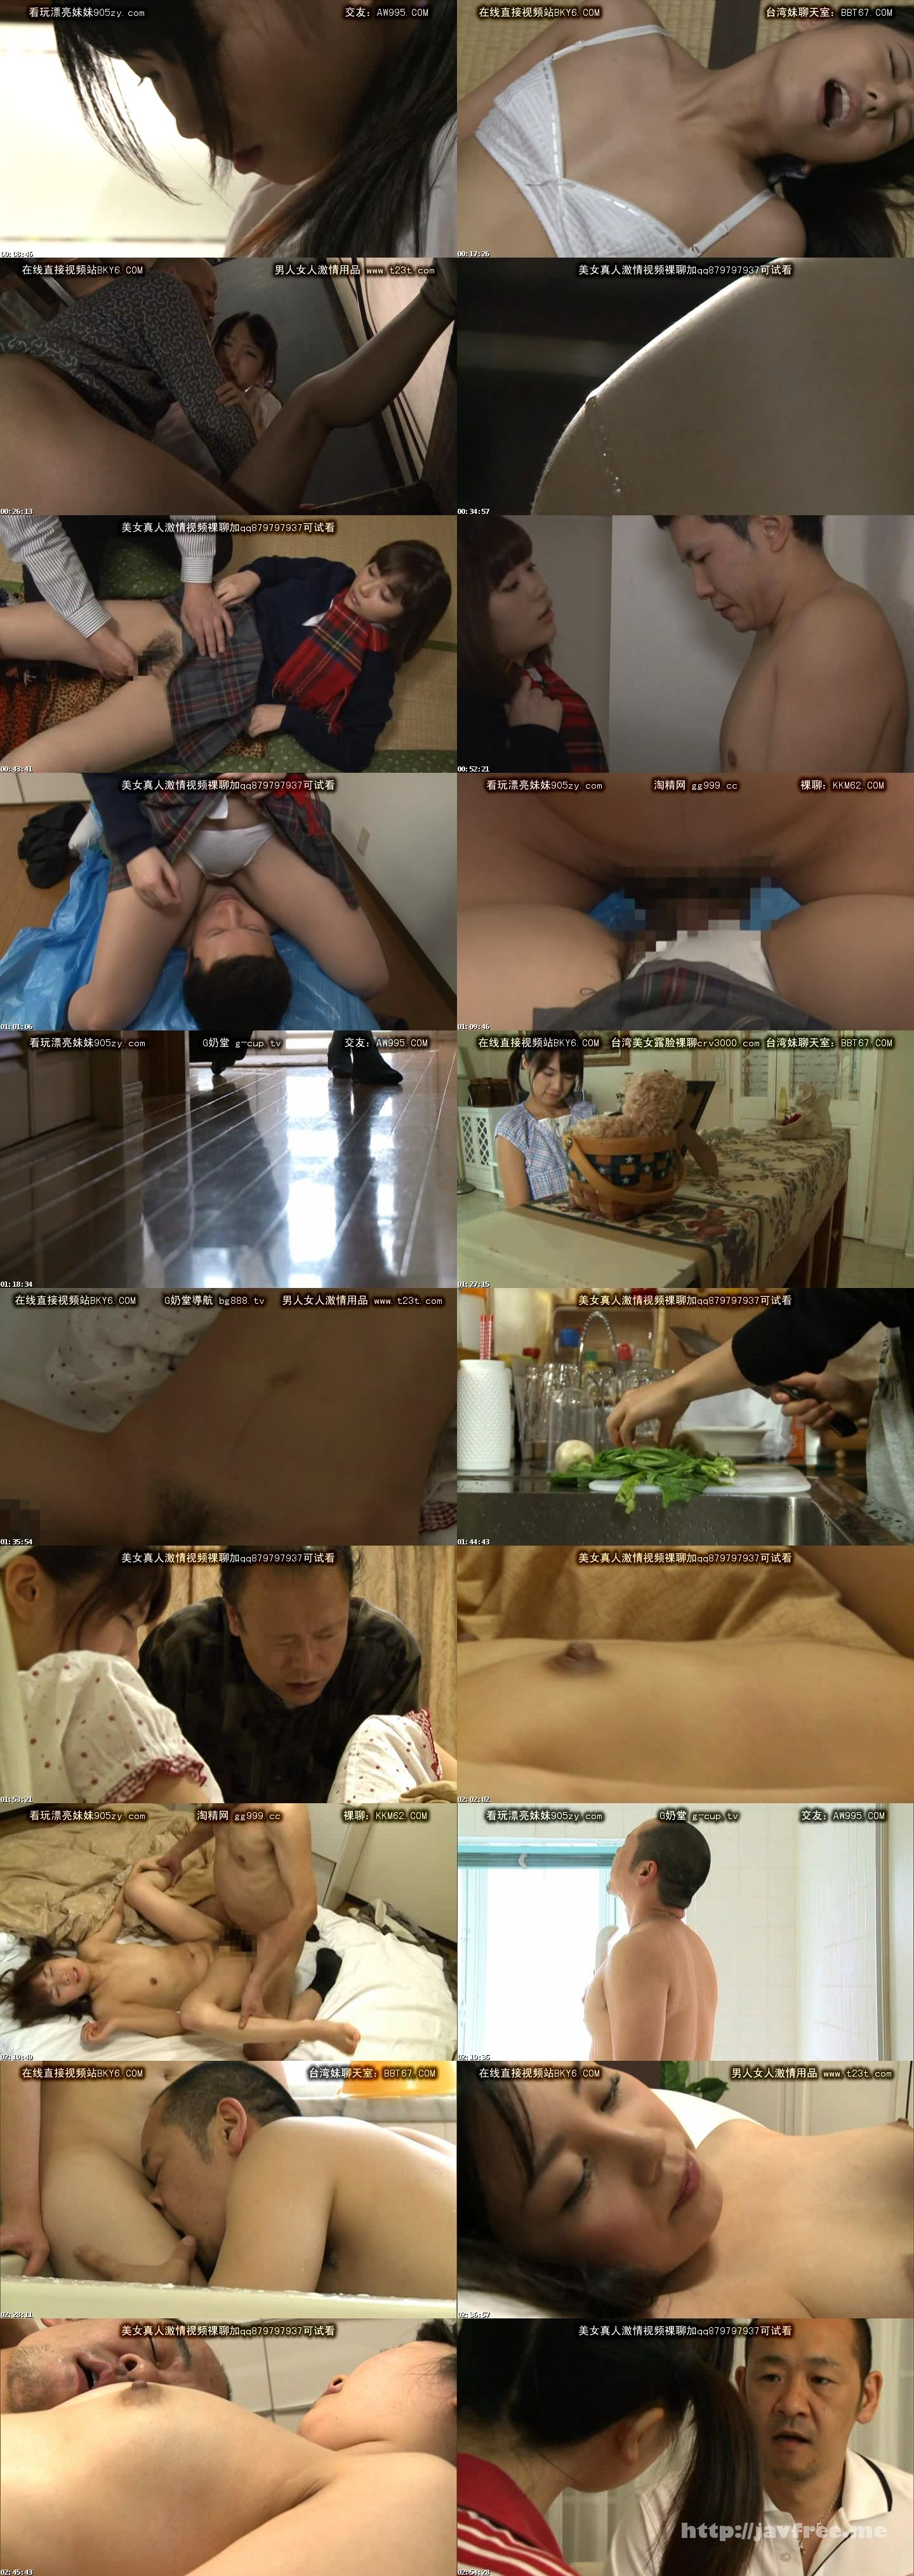 [RABS-020] 中年男を癒す 若い女たち - image RABS-020 on https://javfree.me